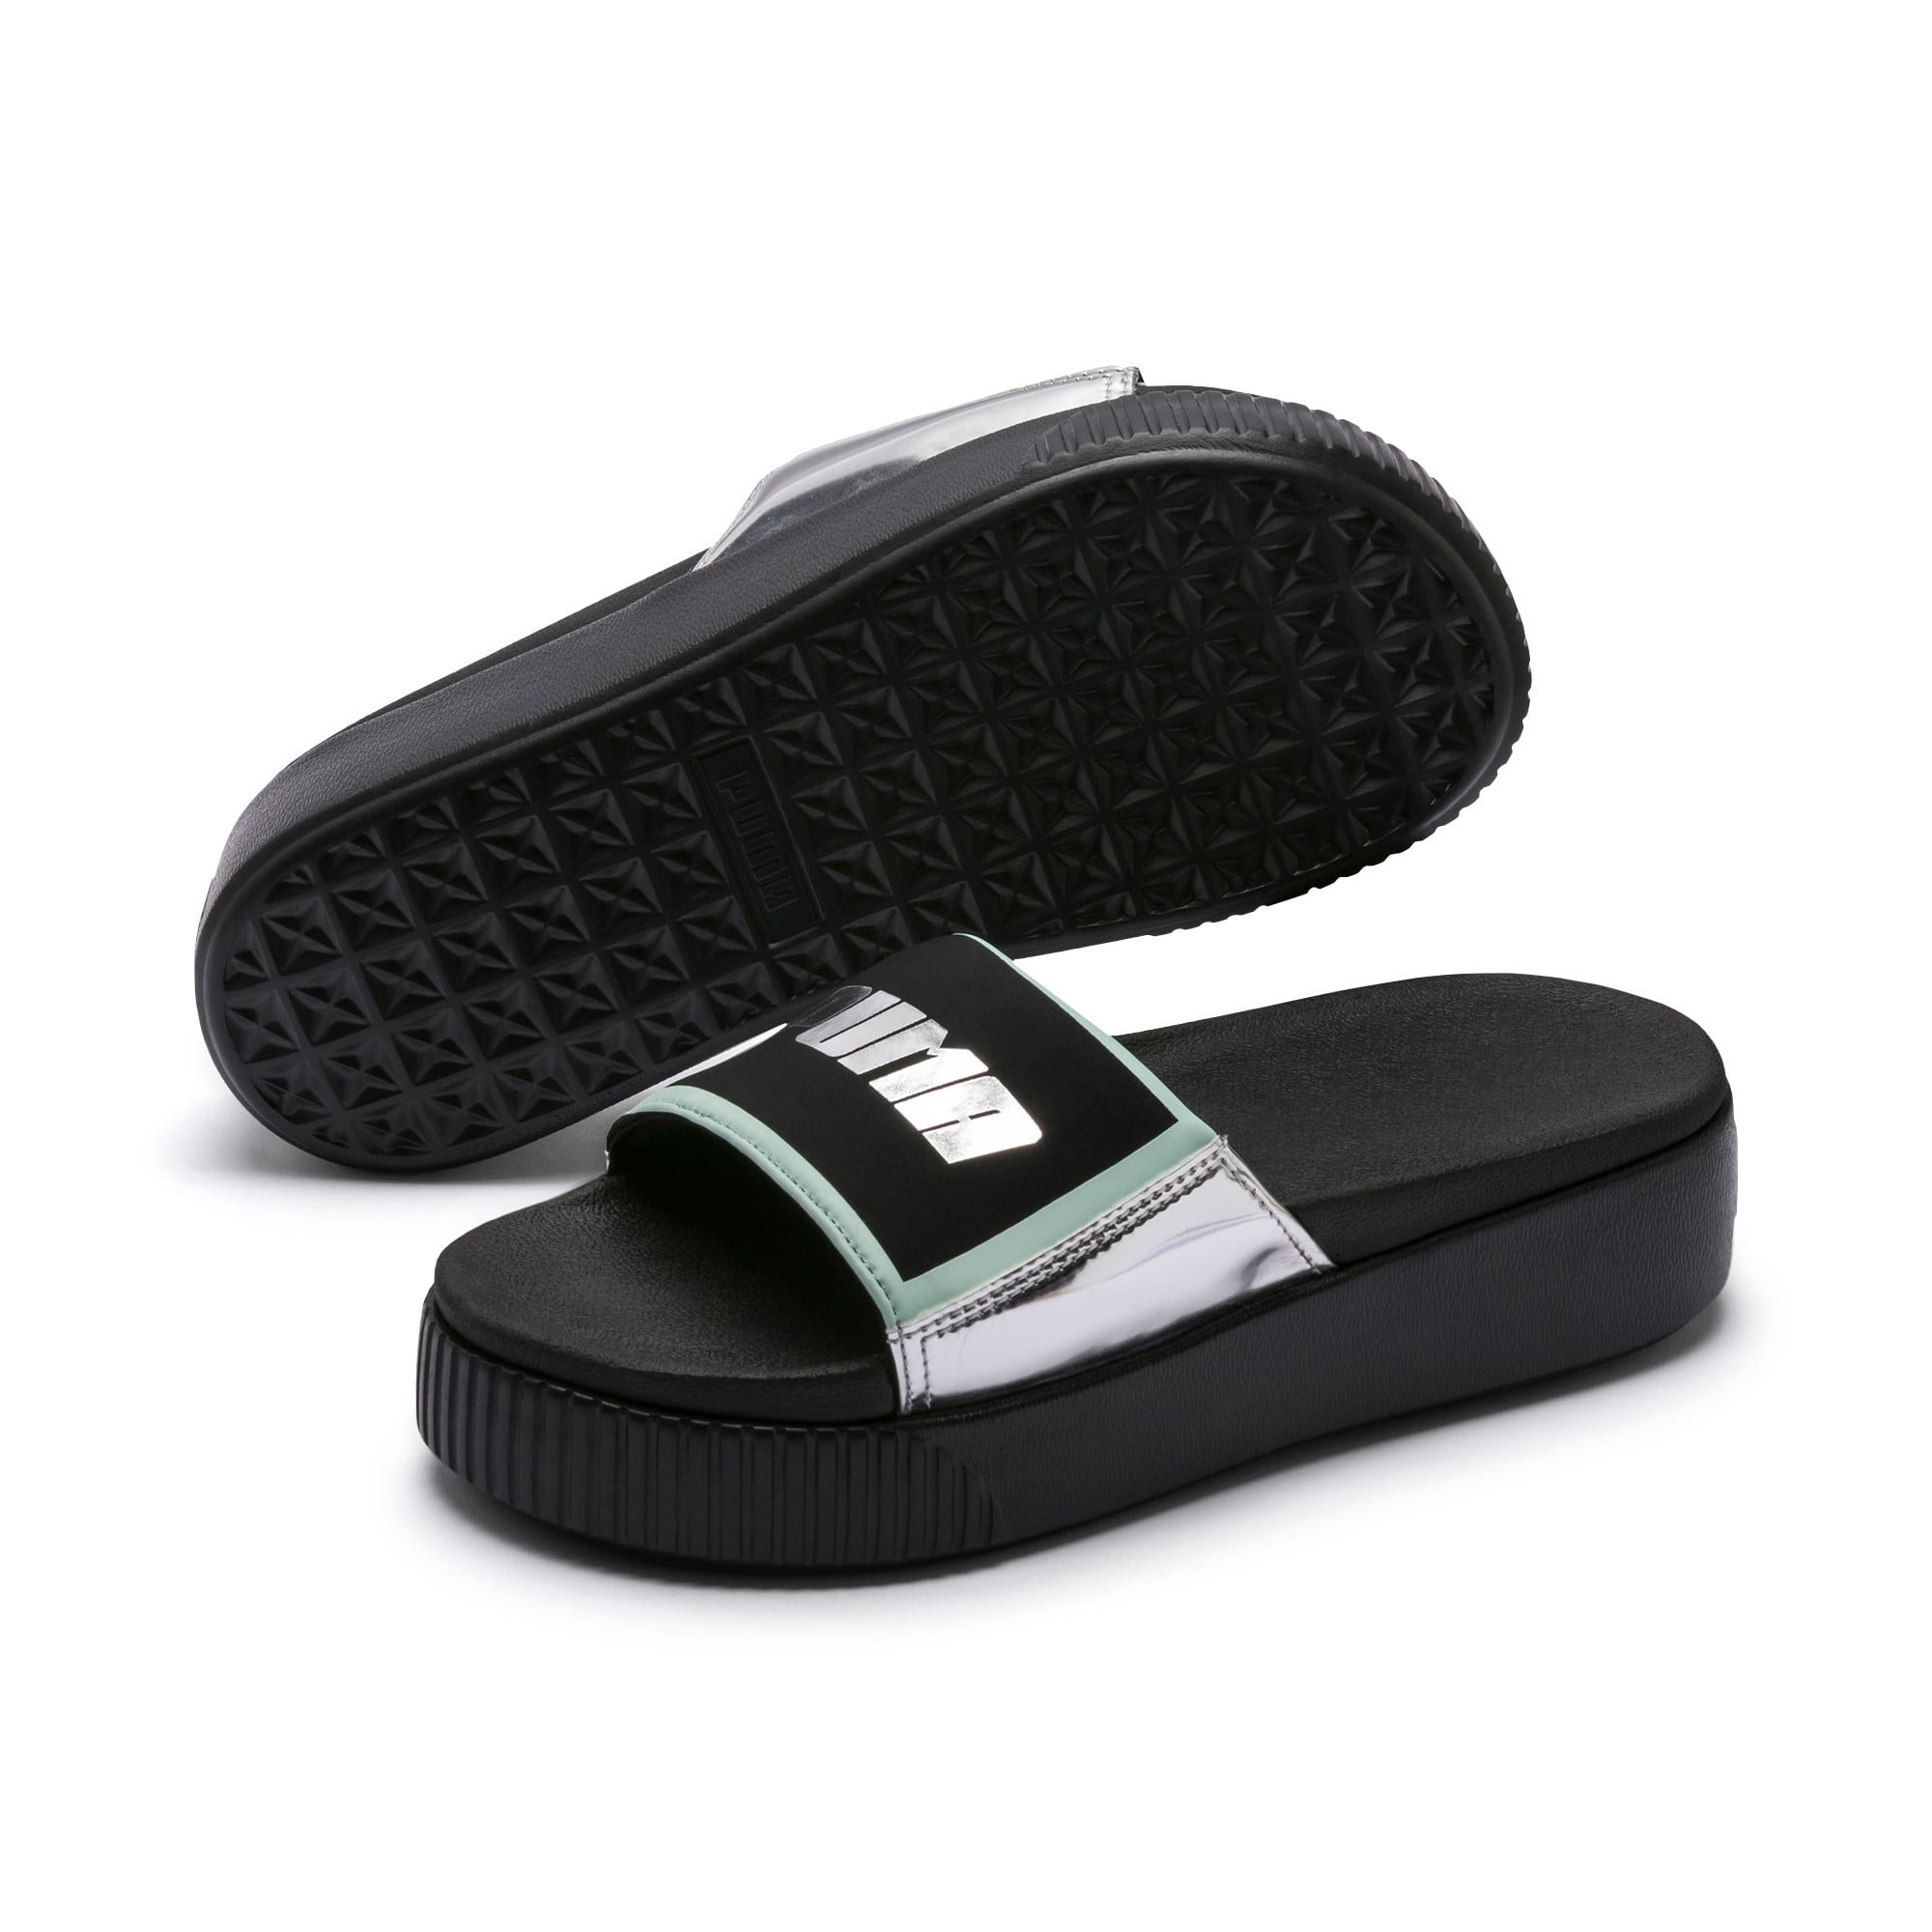 Thumbnail 2 of Platform Slide Trailblazer Metallic Damen Sandalen, Puma Black-Puma Silver, medium